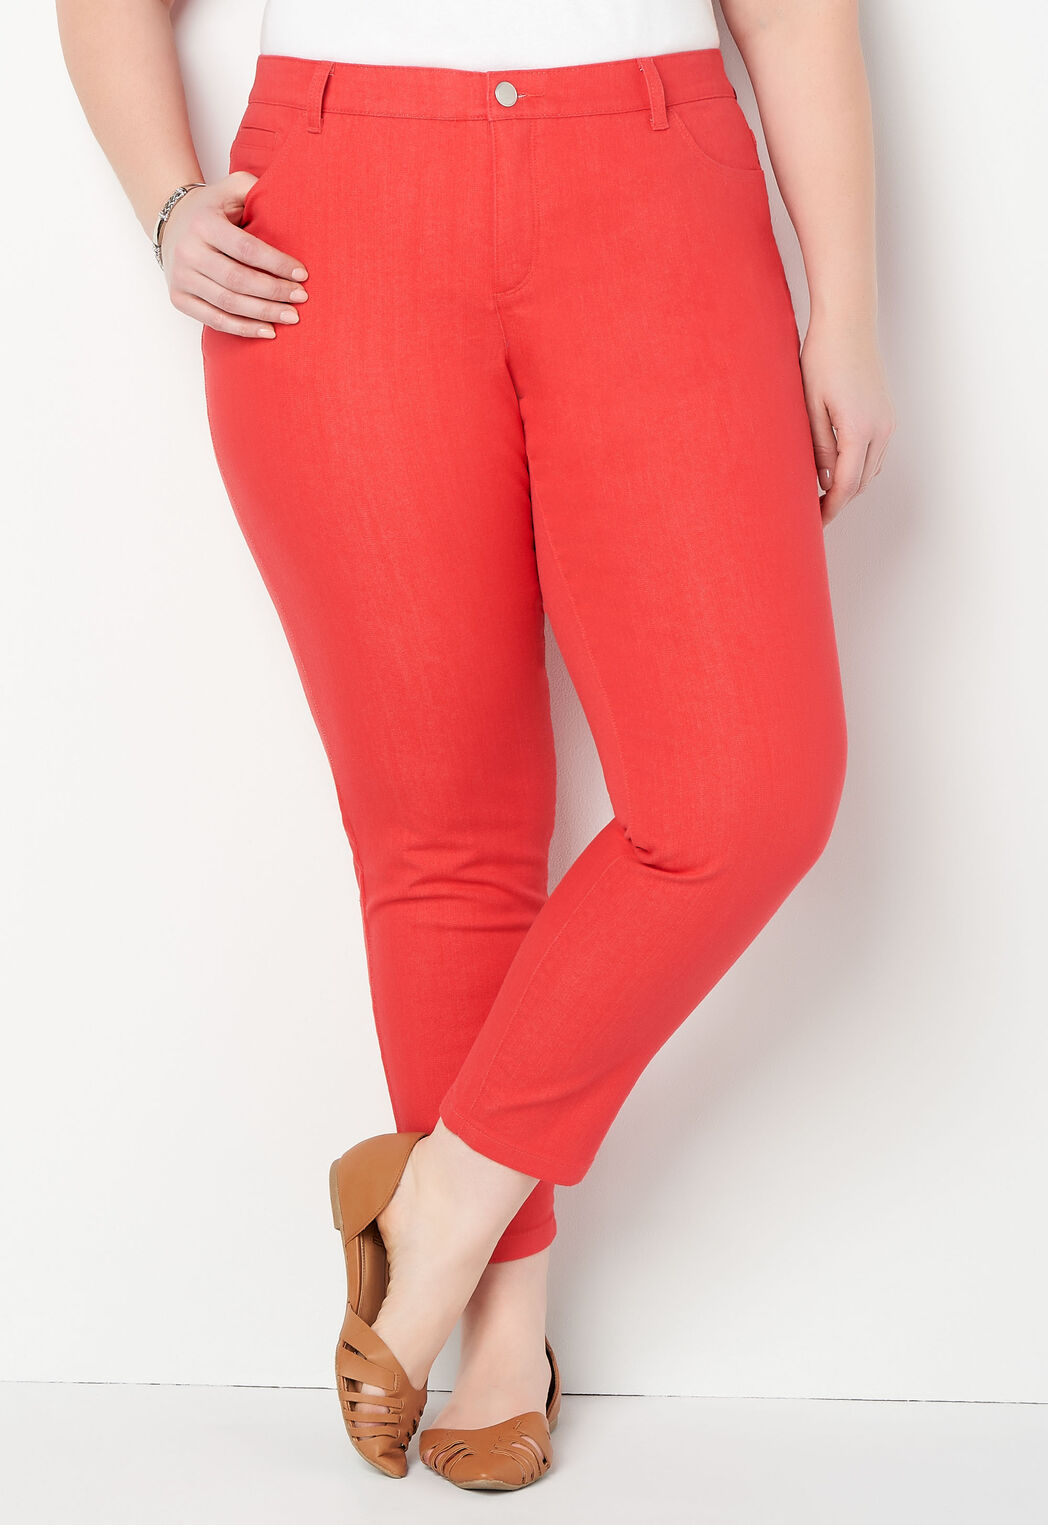 90ba144790b3f ... Signature Slimming Colored Denim Plus Size Ankle Jeans. add to wish  list · add to wish list